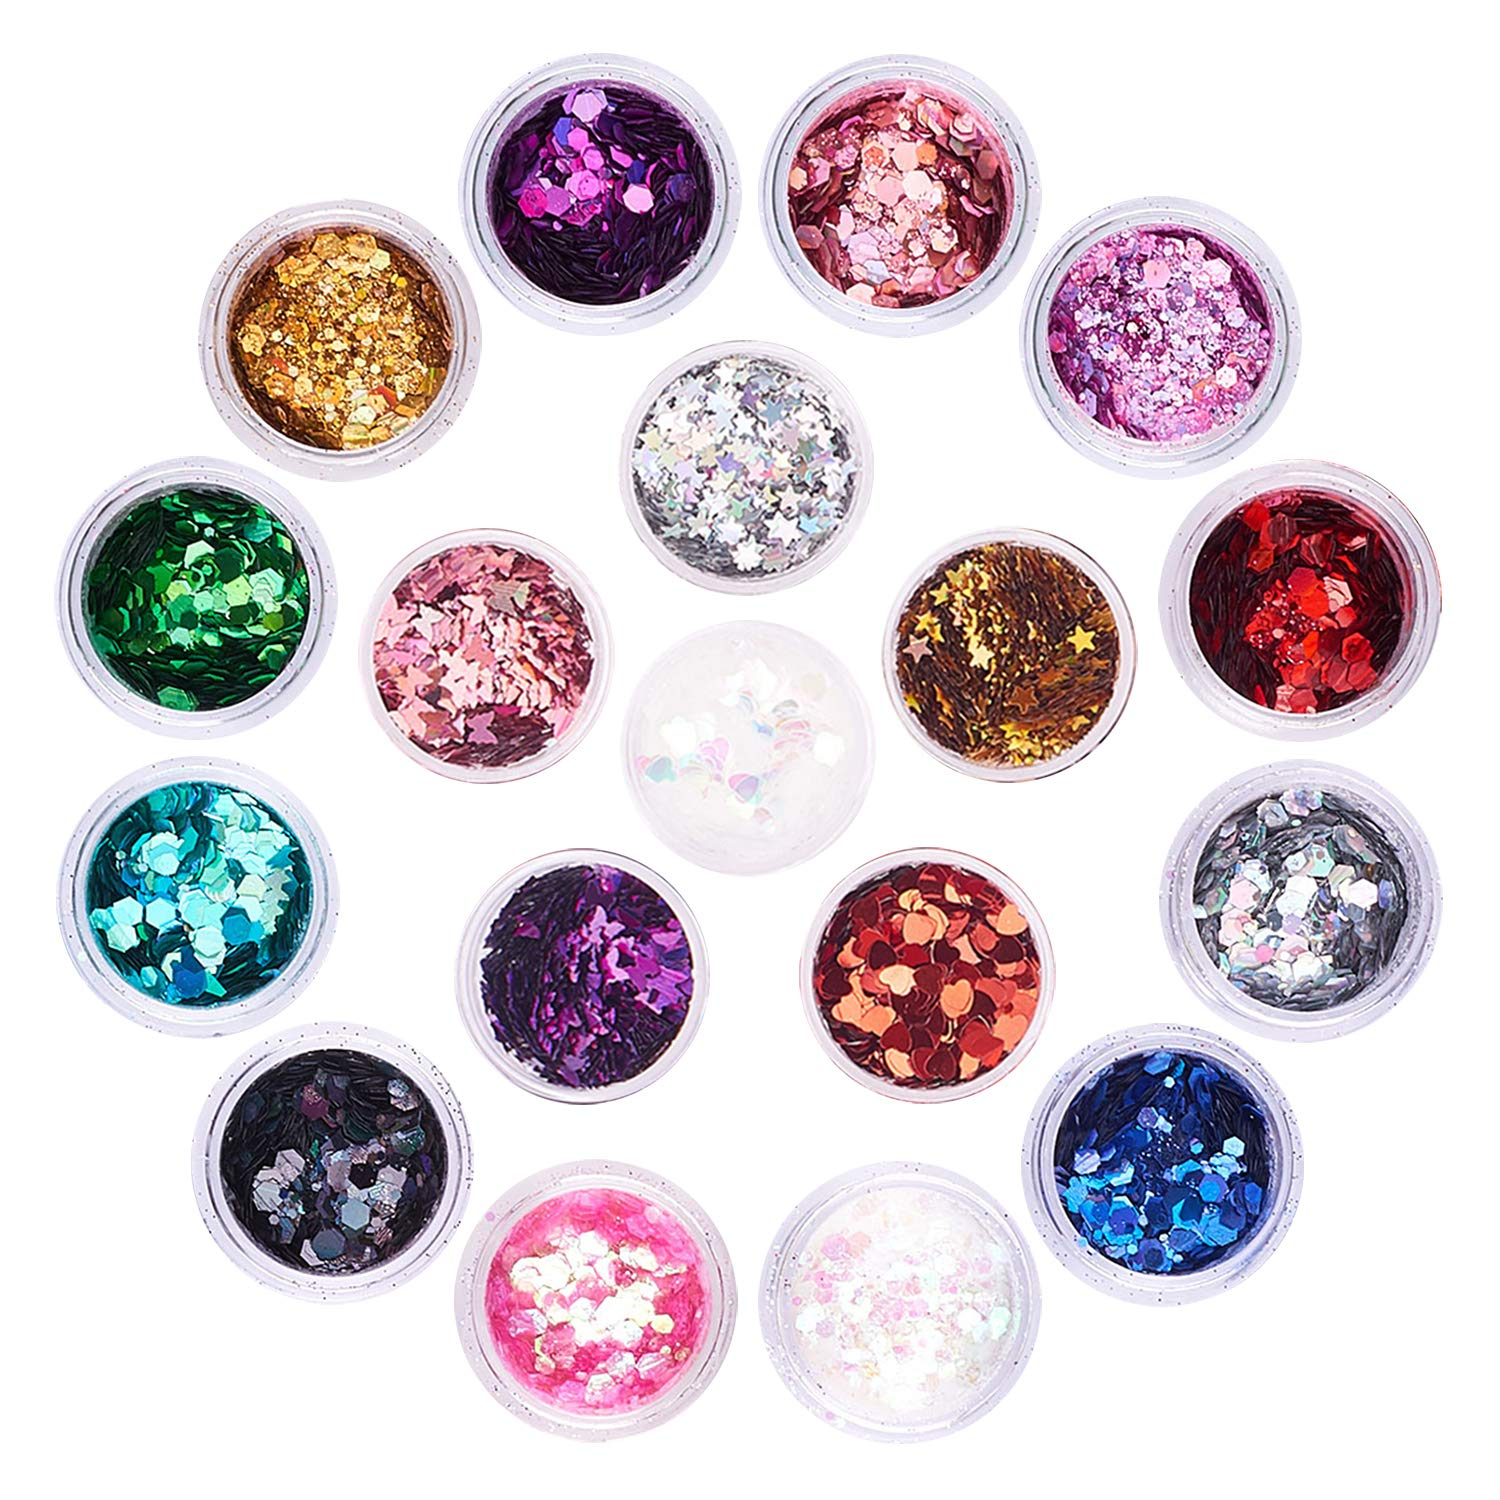 Holographic Chunky Glitter Set, FITDON 12 Colors Face Body Eye Hair Nail Festival Makeup Glitters & 6 Jars Butterfly Star Heart Glitter Sequins : Beauty & Personal Care